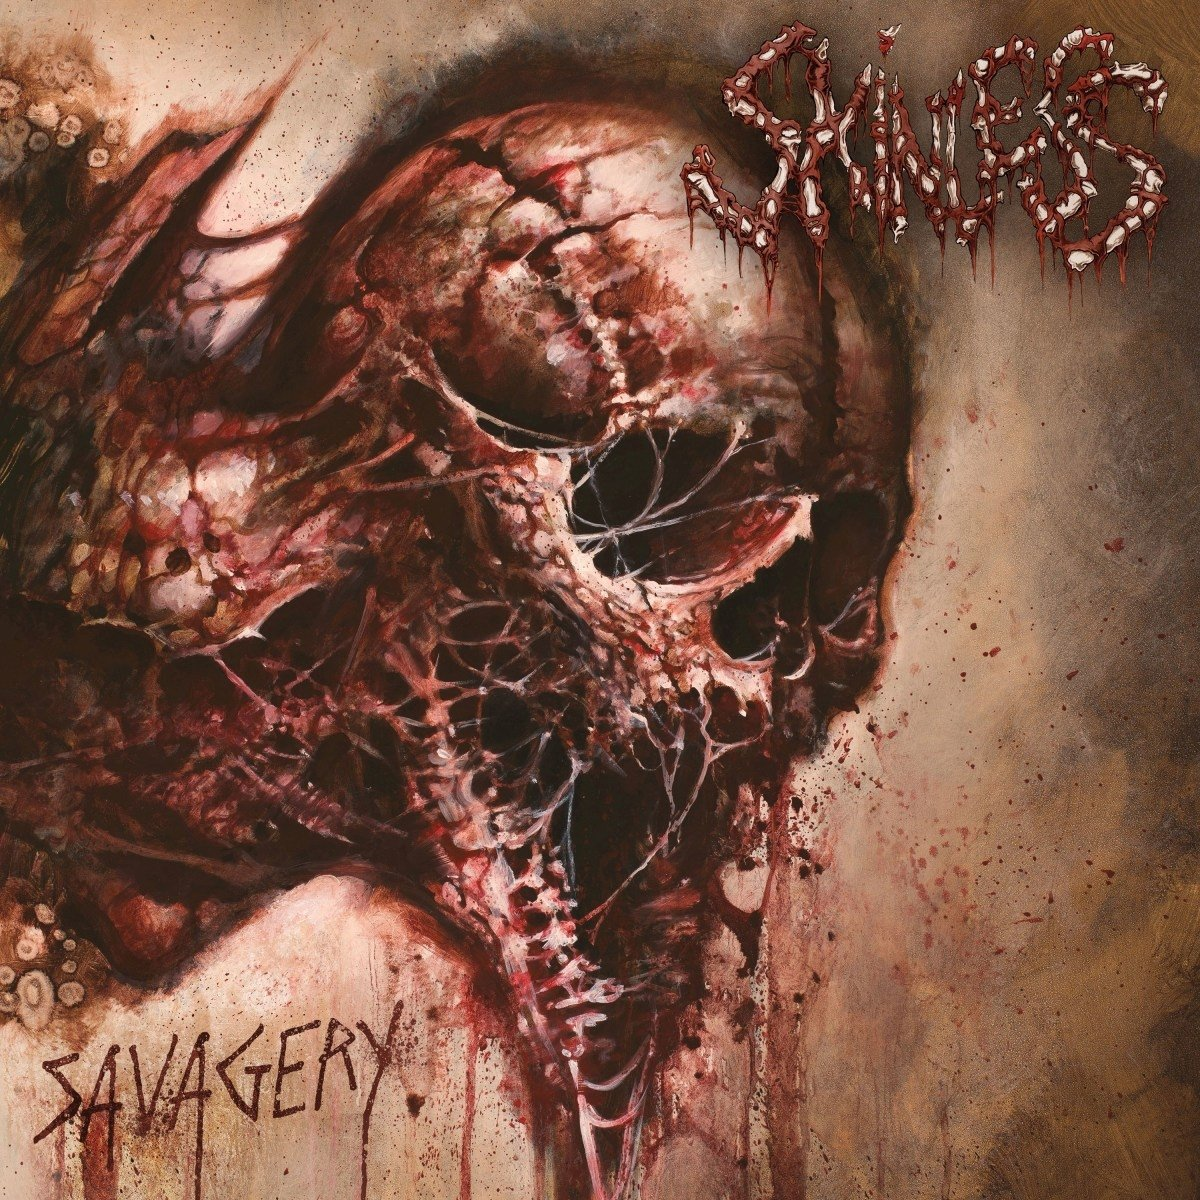 Vinilo : Skinless - Savagery (LP Vinyl)